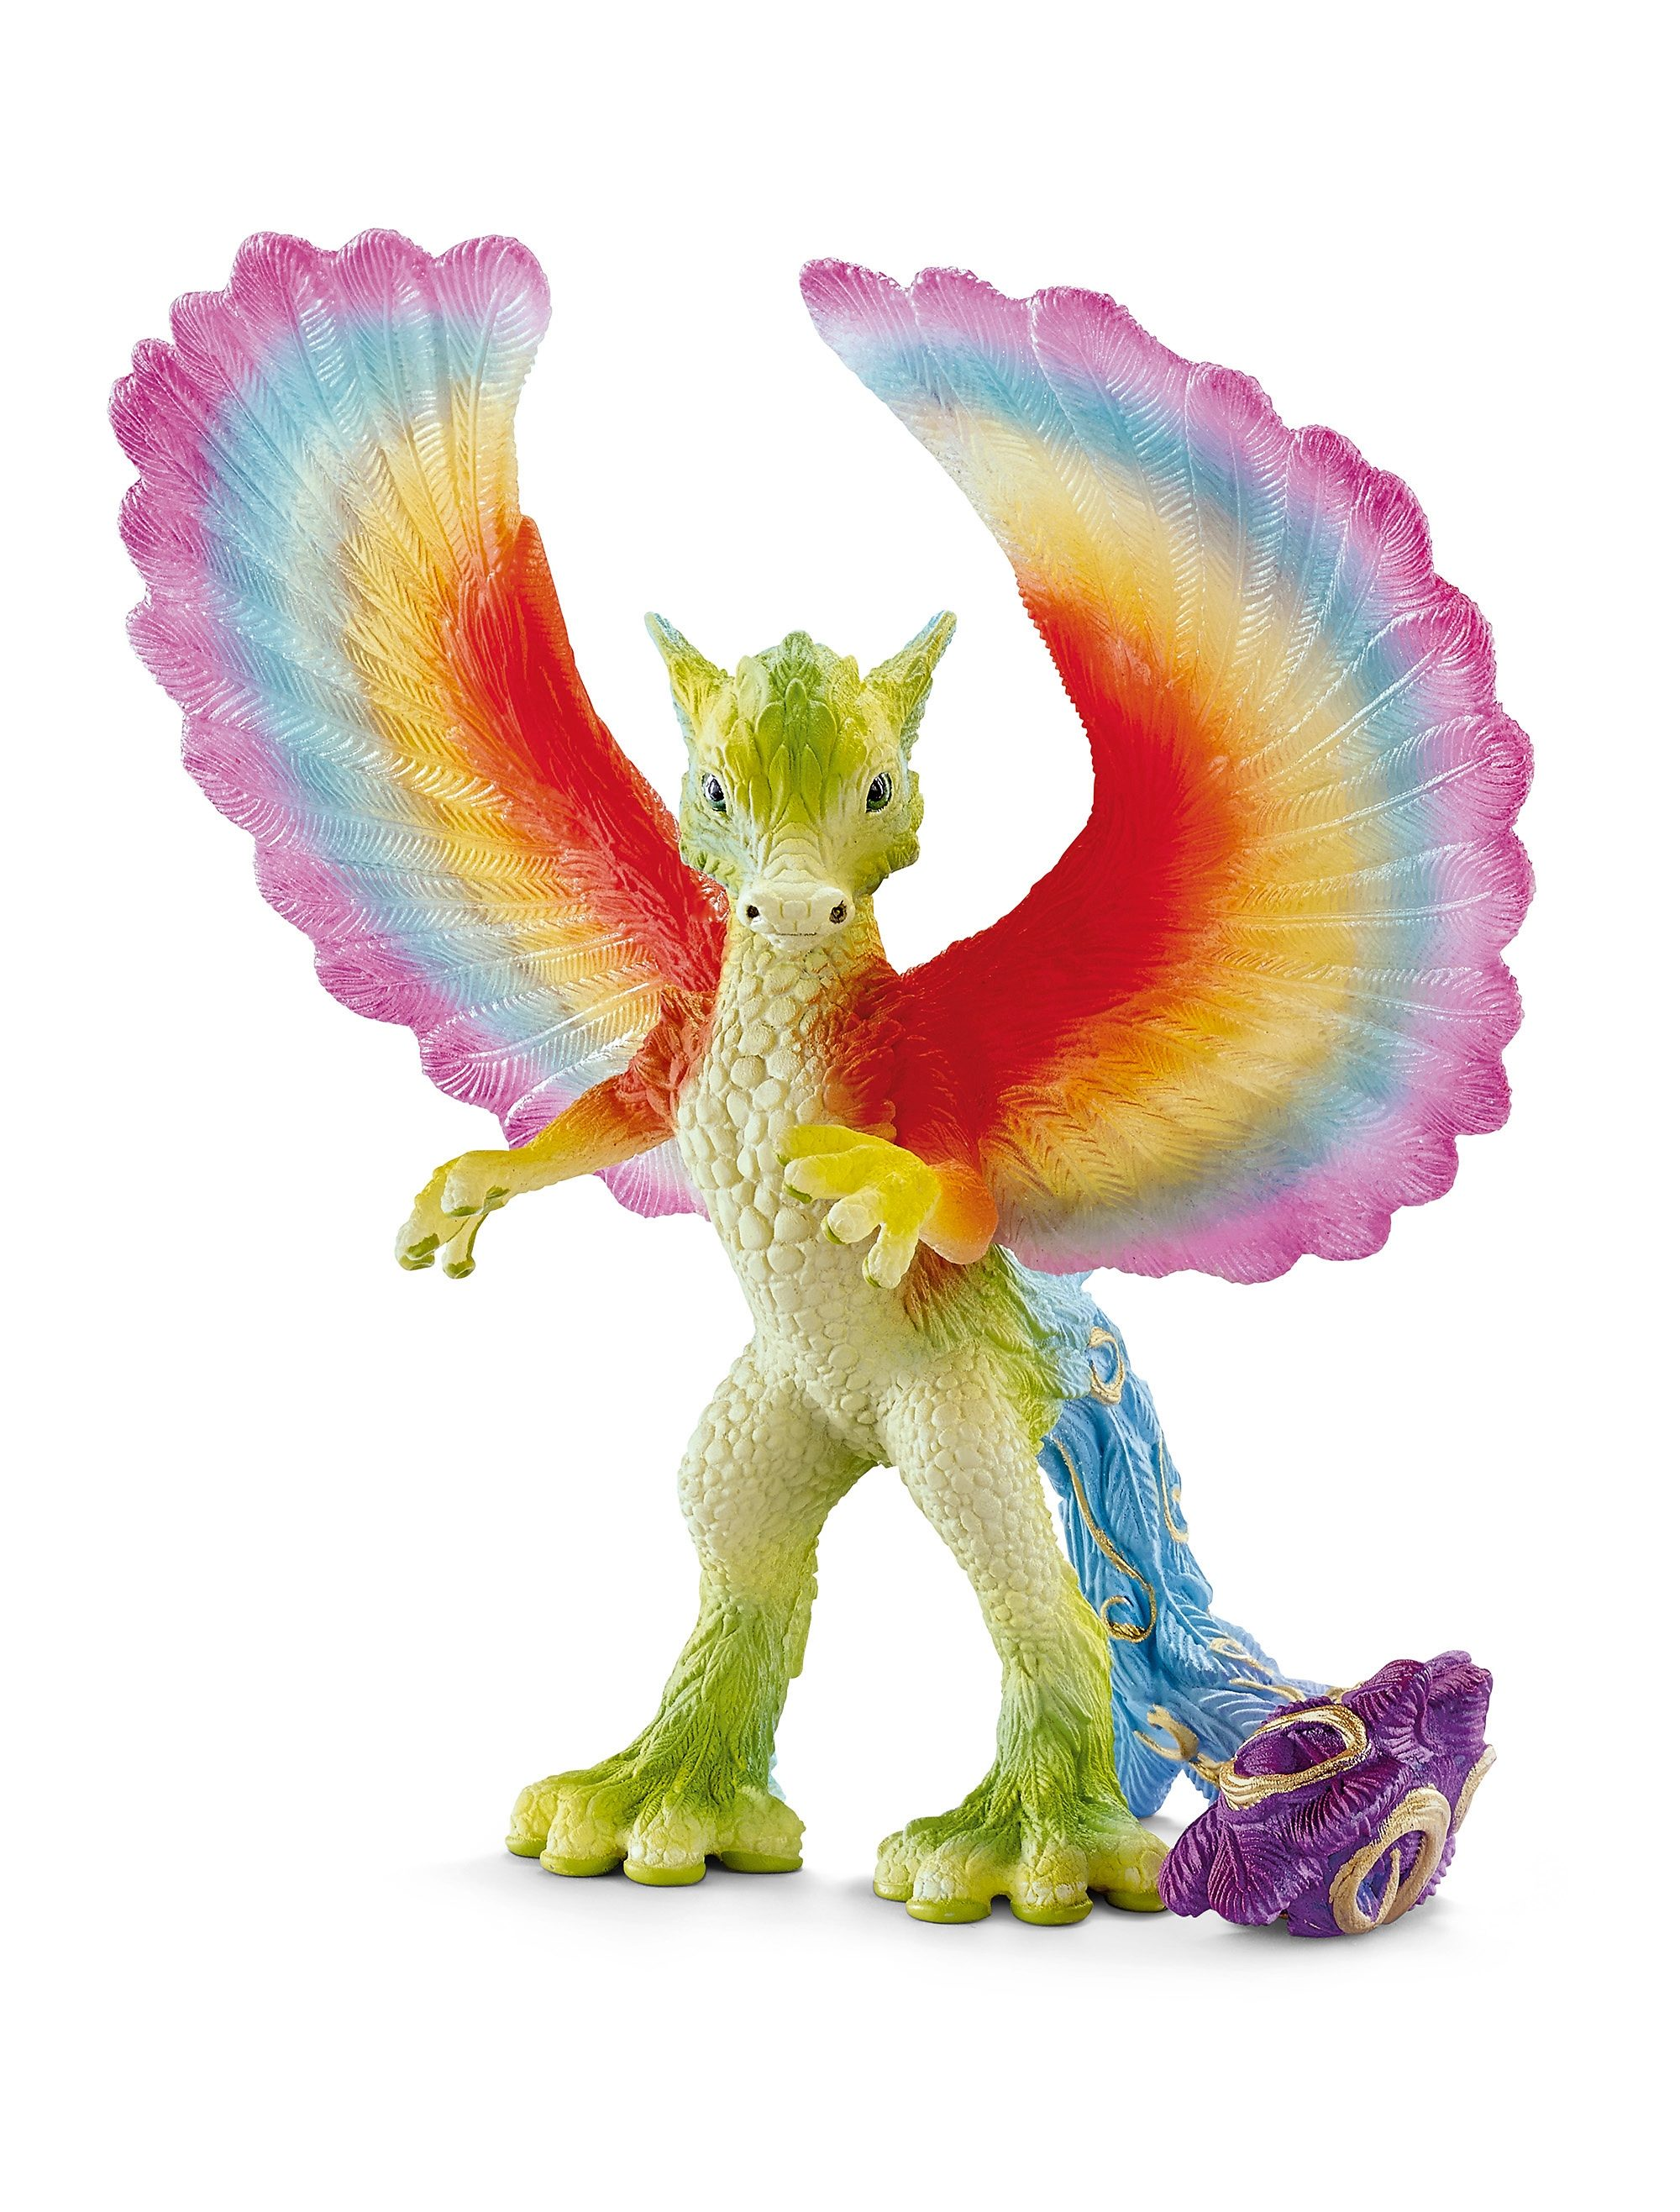 Schleich® Spielfigur (70485), »World of Fantasy, bayala-Drache Damarai«